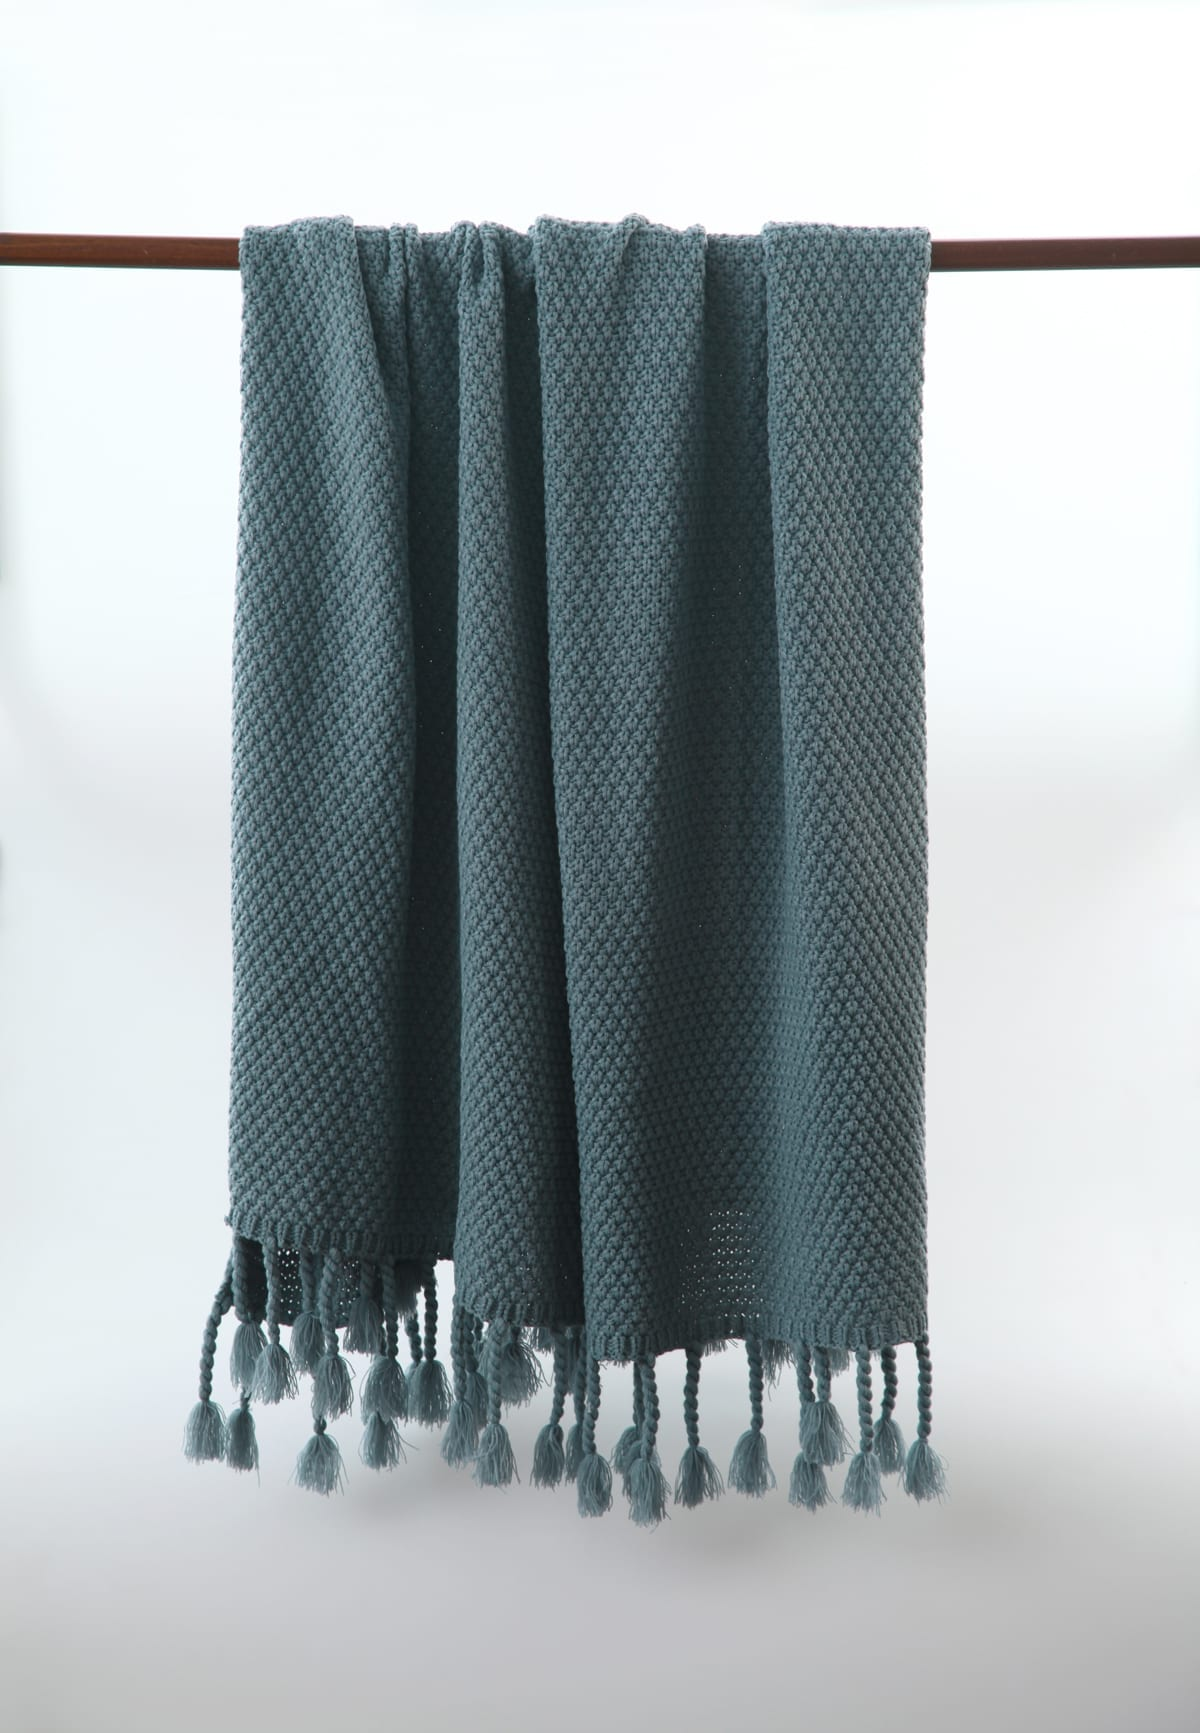 MM Linen Chunky Knit Throw in Slate Blue available at McKenzie & Willis